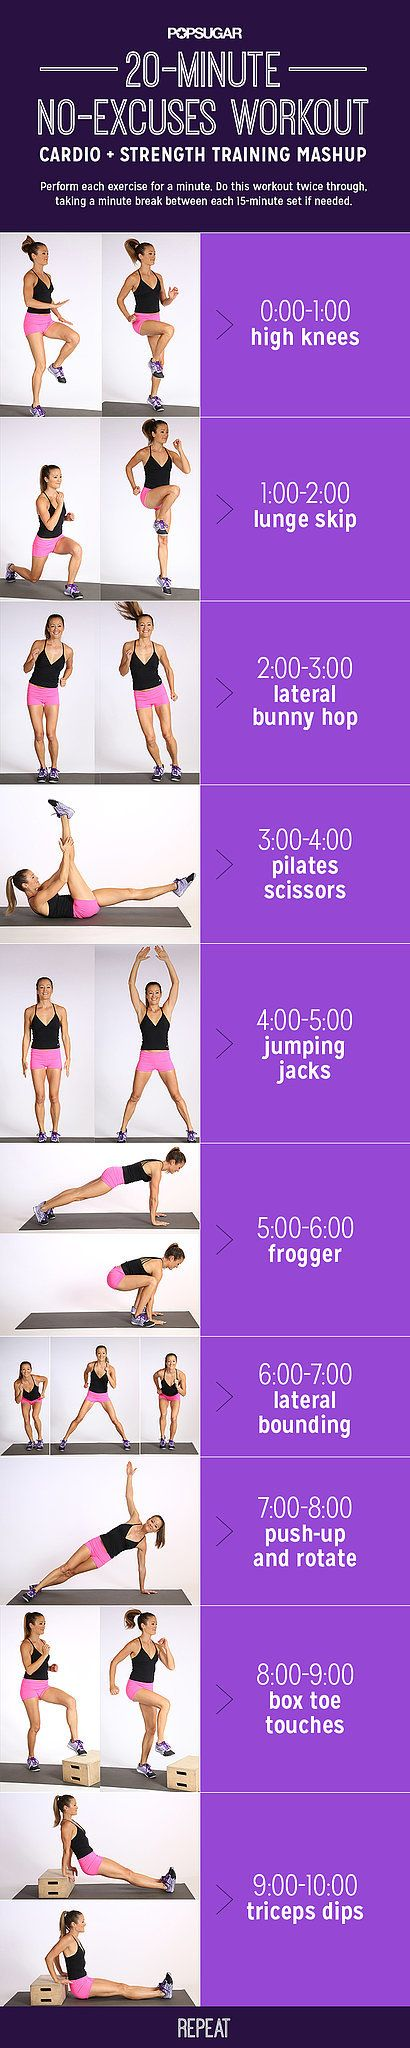 Printable Workout: Quick, Effective Cardio —No Running Required